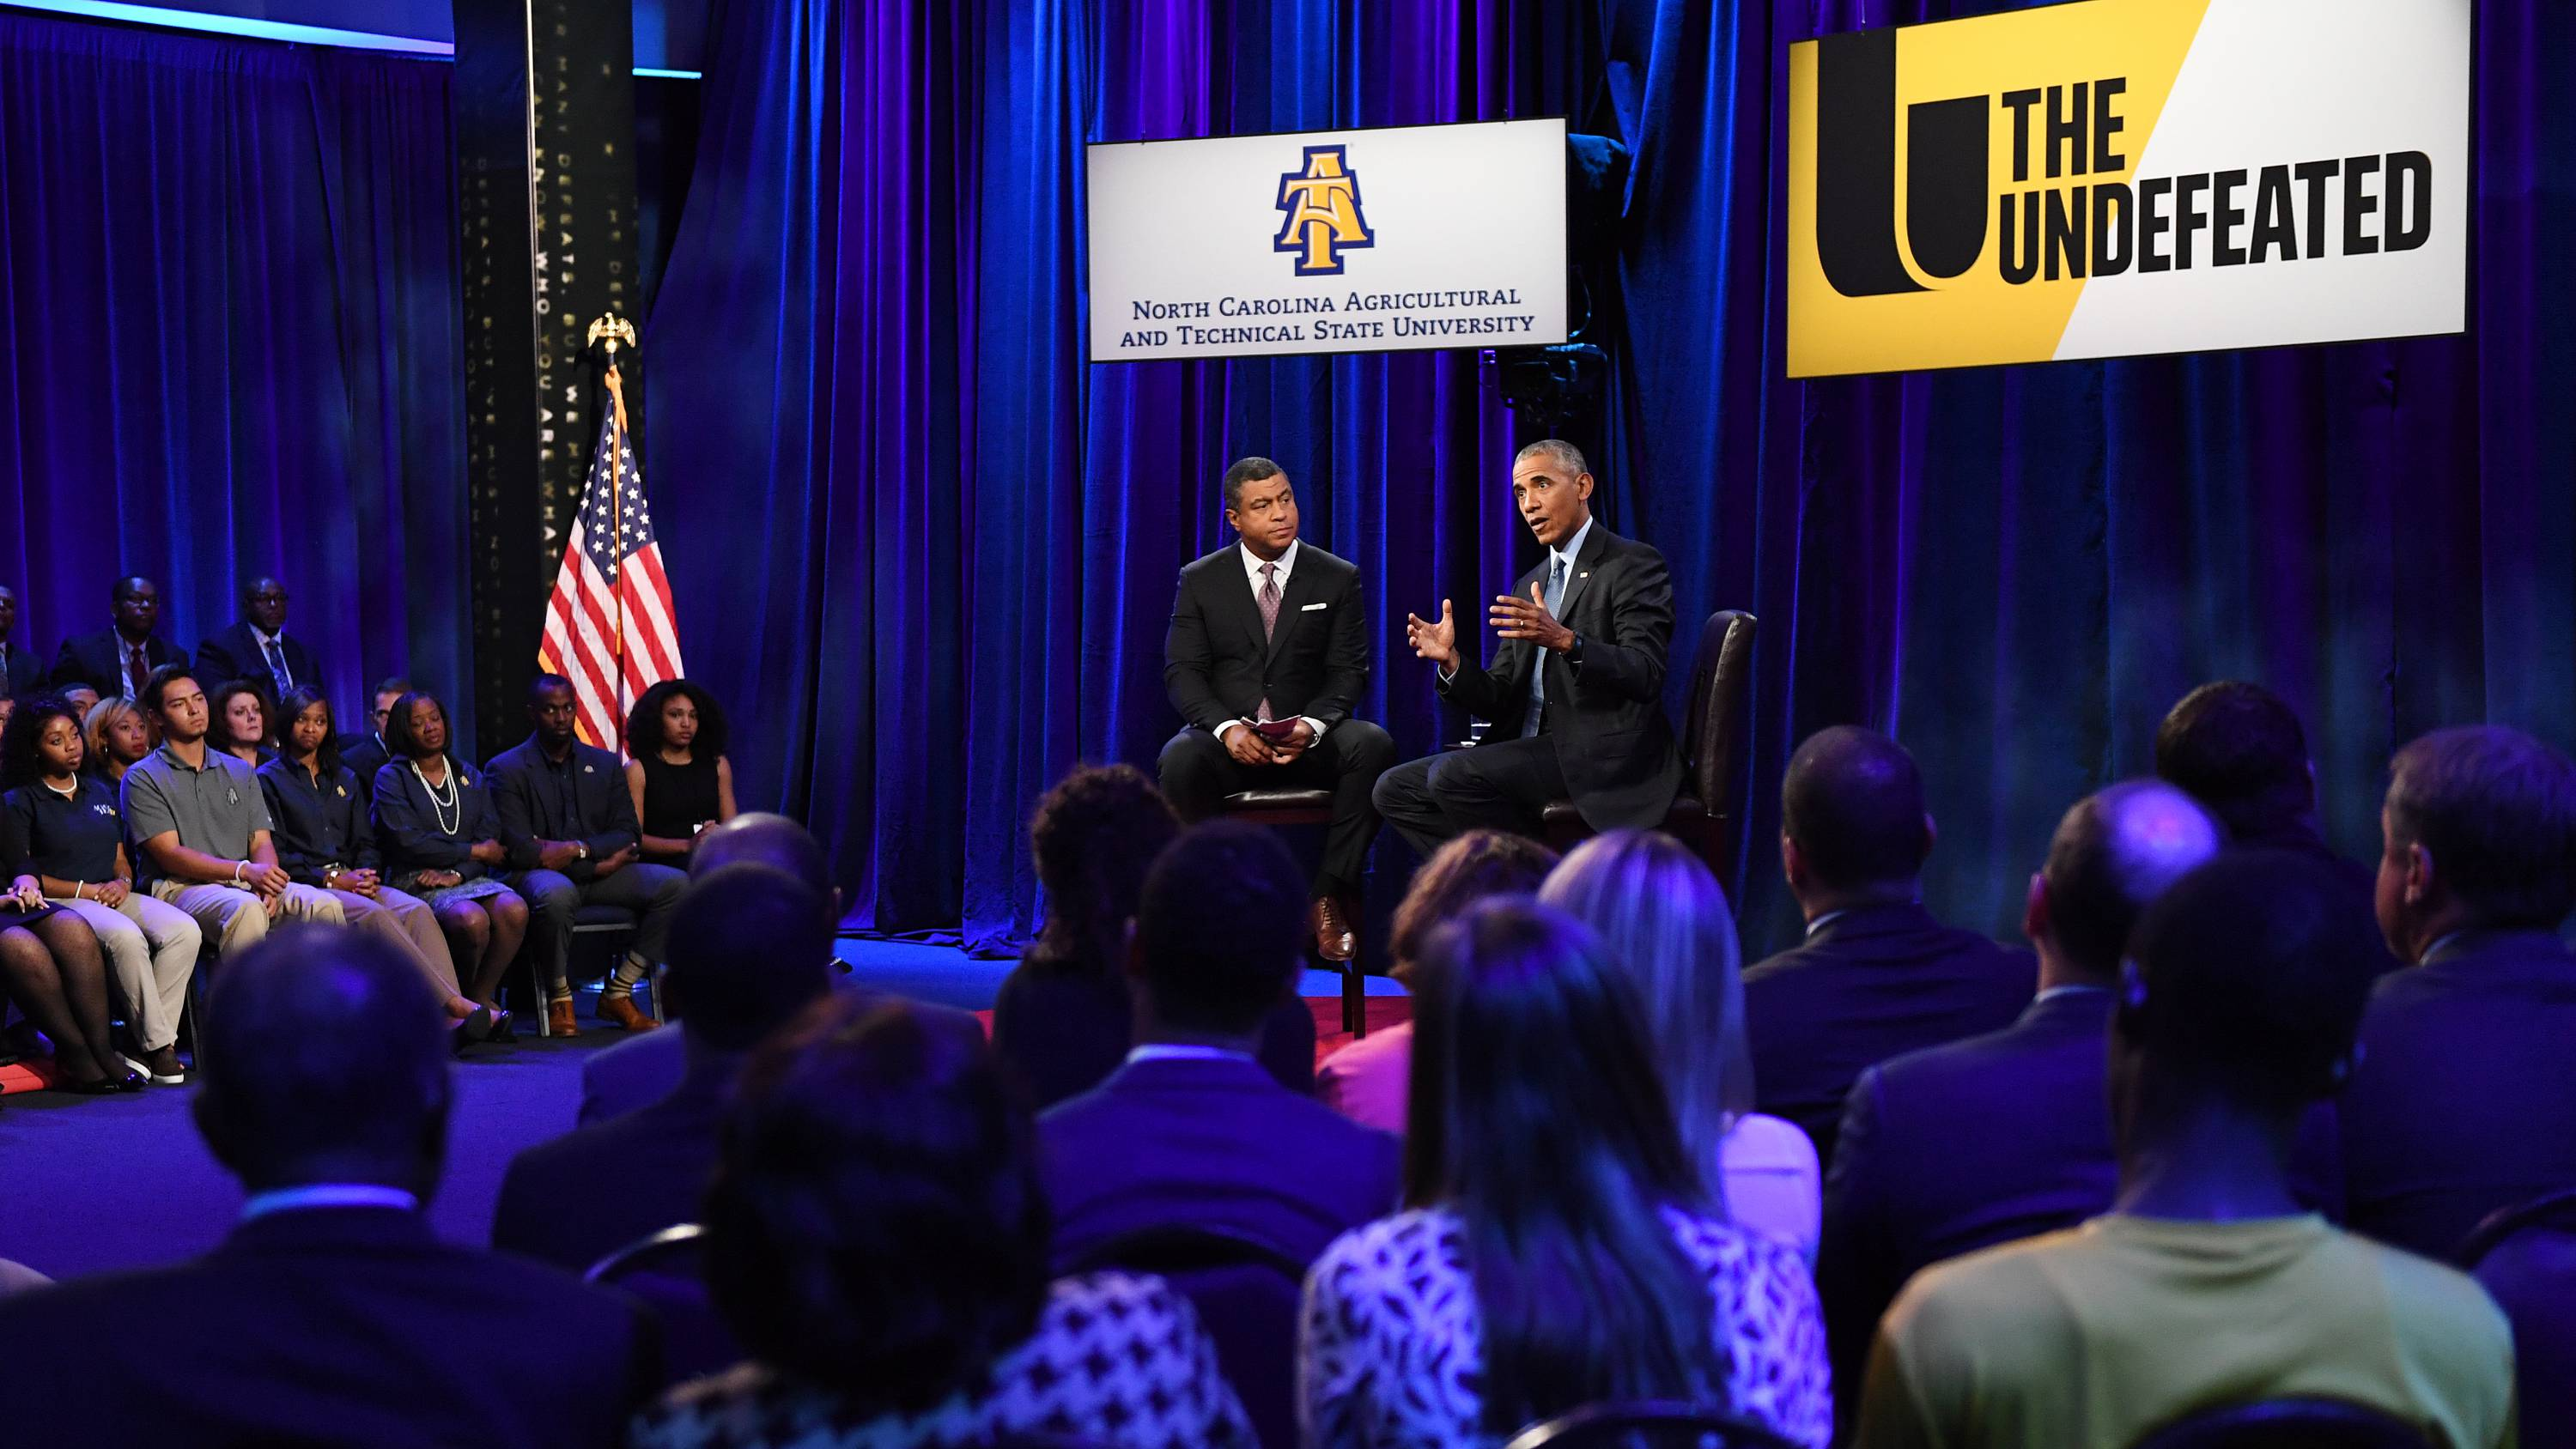 """President Obama and ESPN """"SportsCenter"""" anchor Stan Verrett, who hosted and moderated the town hall in Greensboro, N.C. """"ESPN's The Undefeated, a website devoted to sports, race, culture and historically black colleges and universities, has picked A&T specifically because of its size — it's the largest HBCU in the country — and prestige,"""" John Newsome reported for the News & Record in Greensboro."""